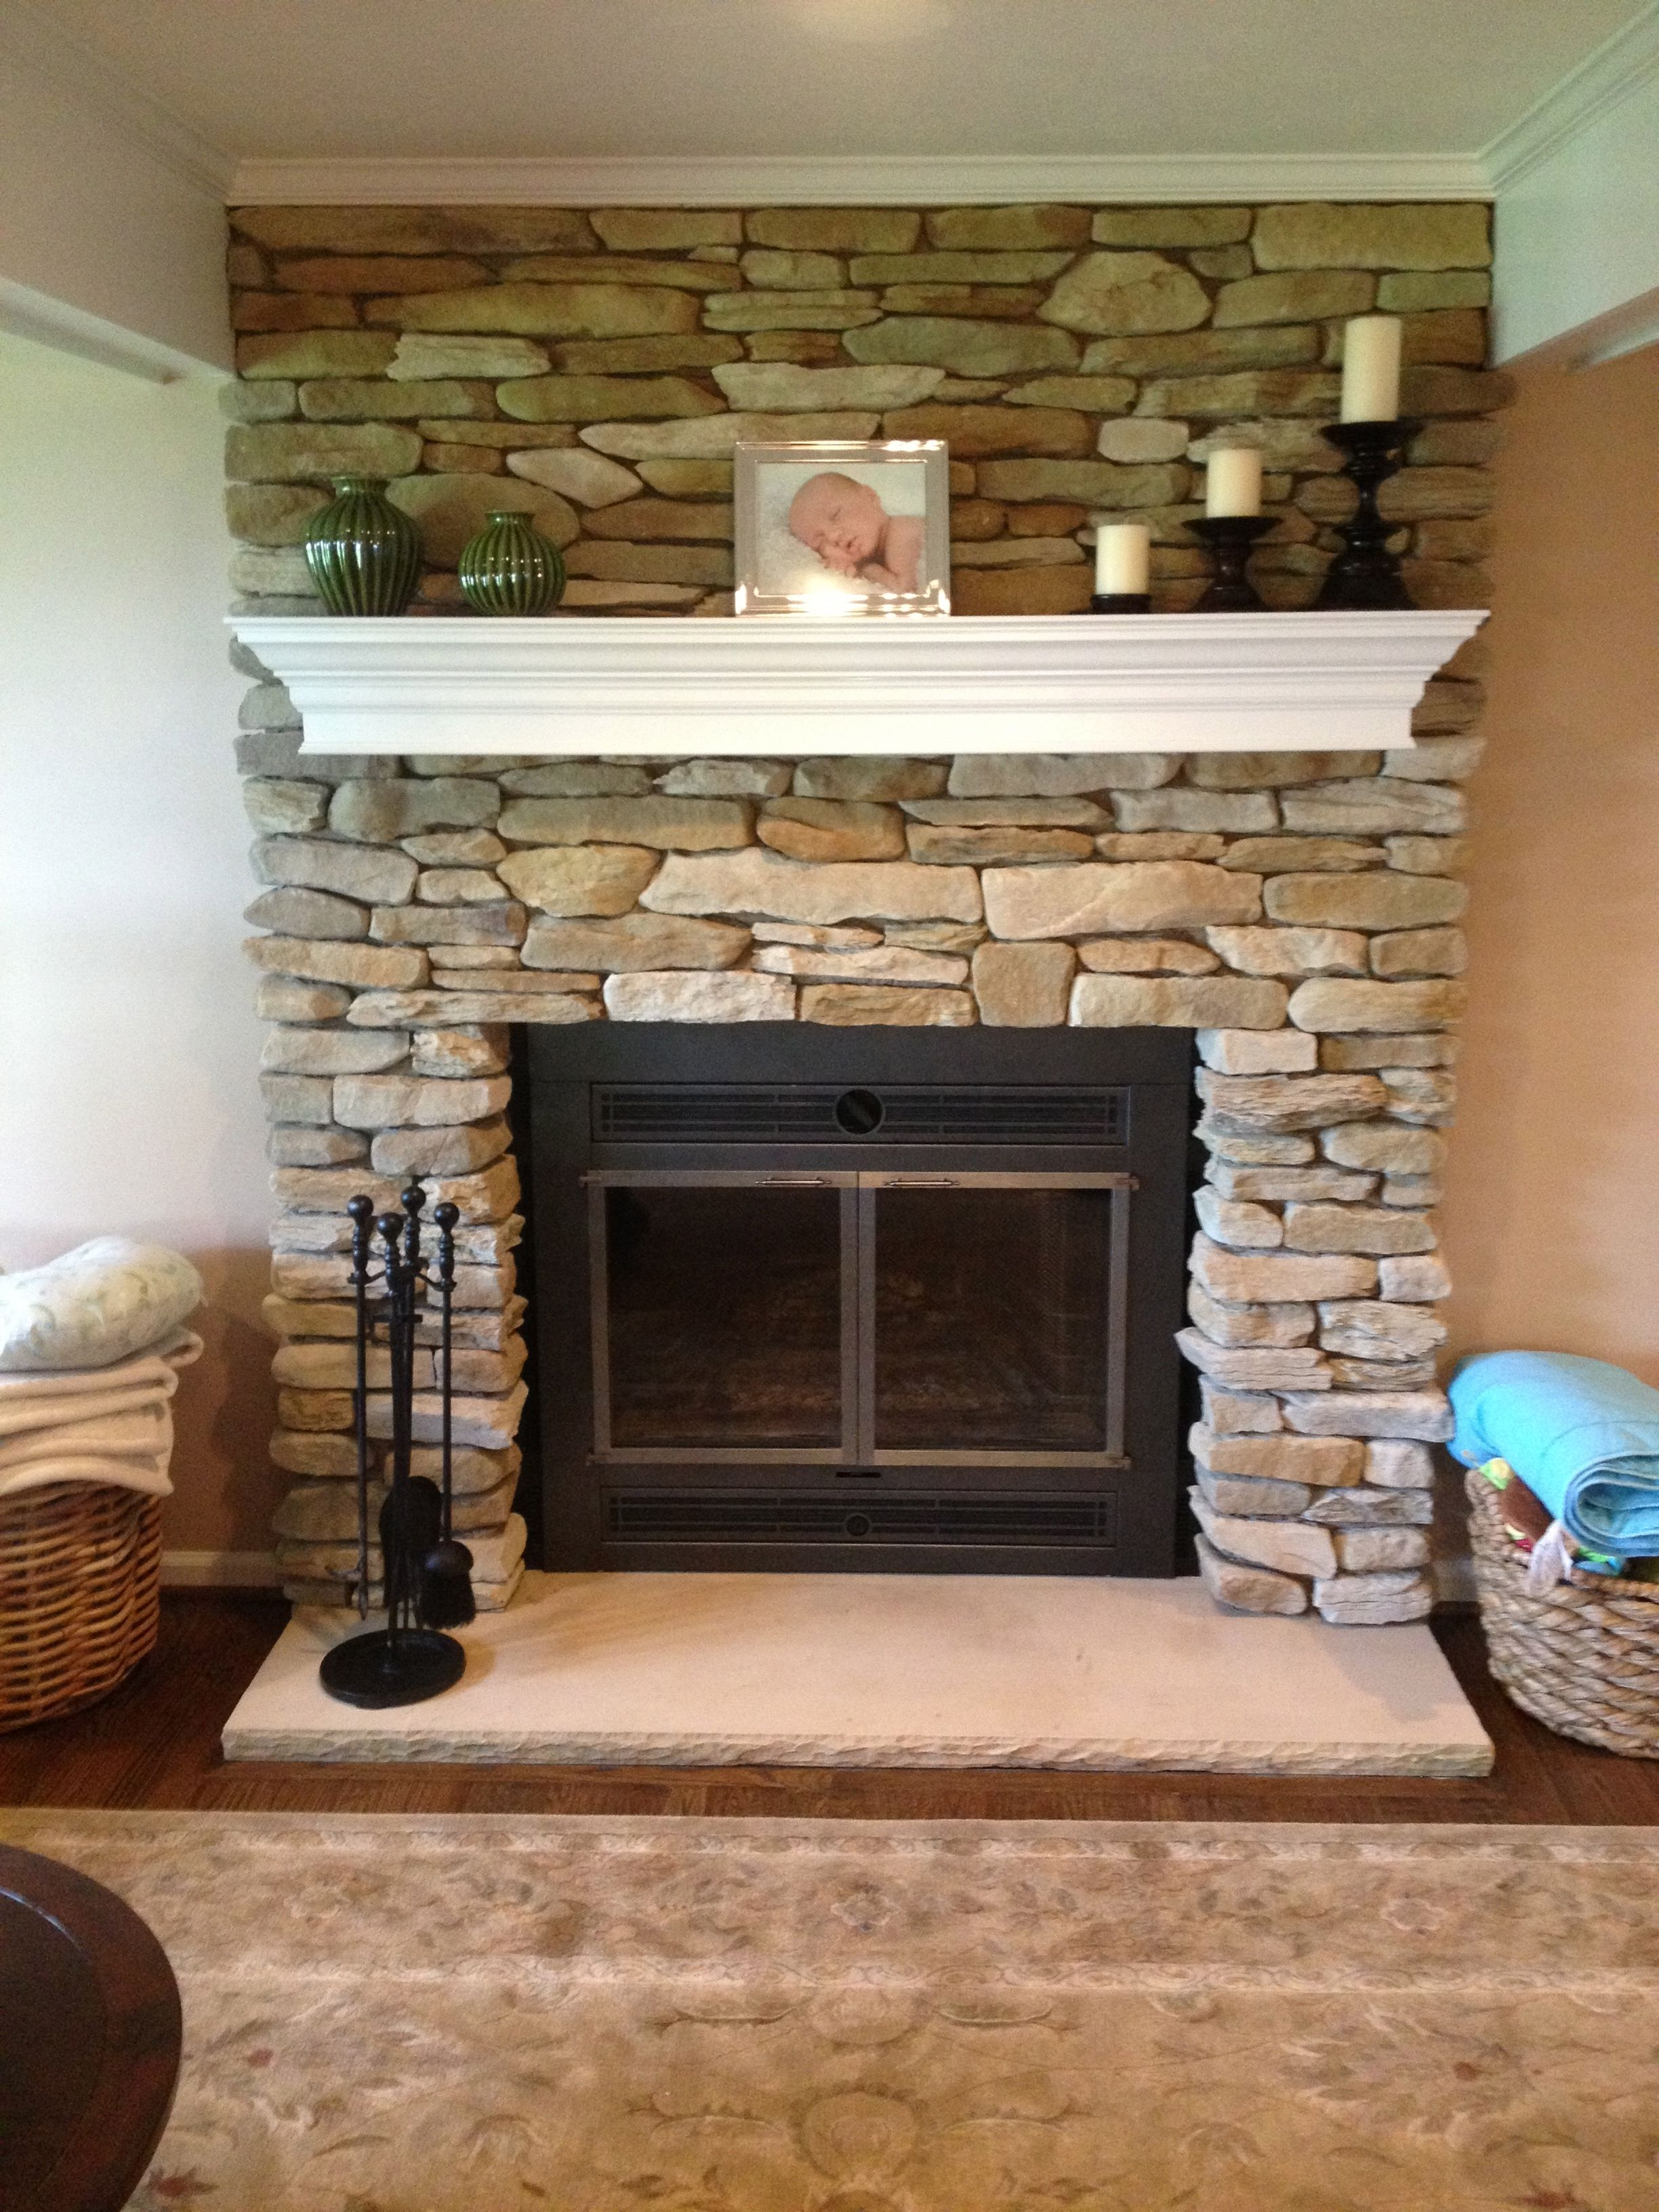 The New Refaced Fireplace With Doors And Custom Mantel